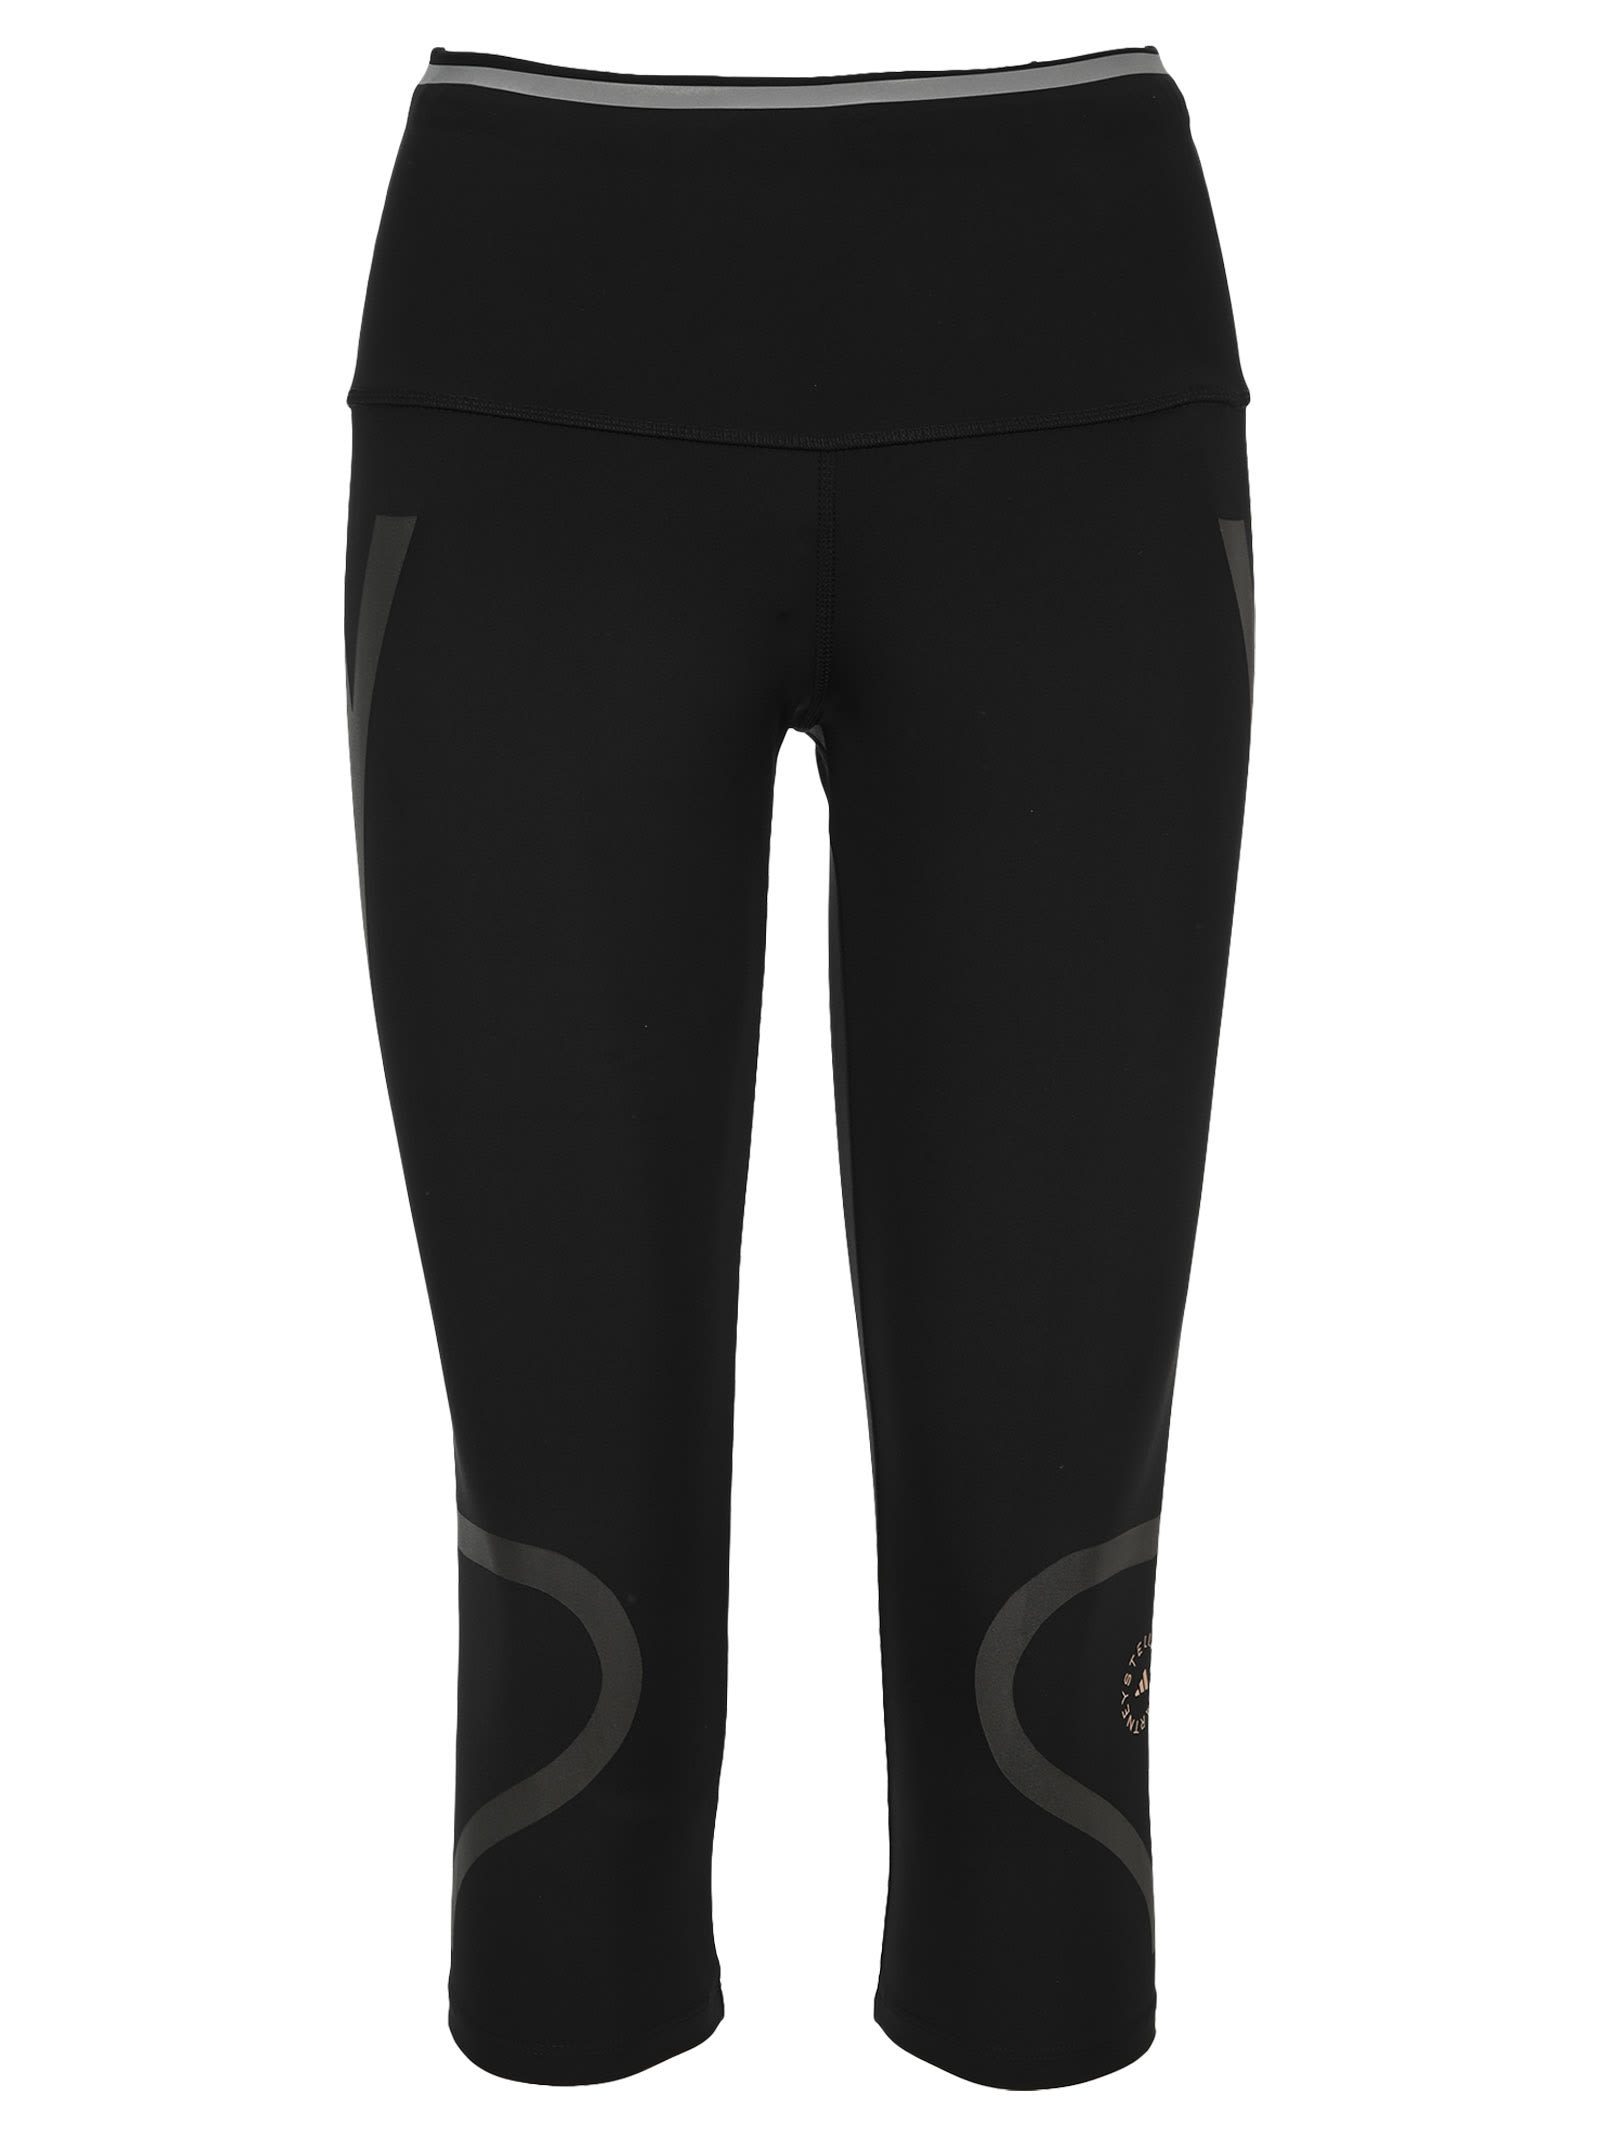 Adidas By Stella Mccartney TRUEPACE 3/4 SPORTS LEGGINGS